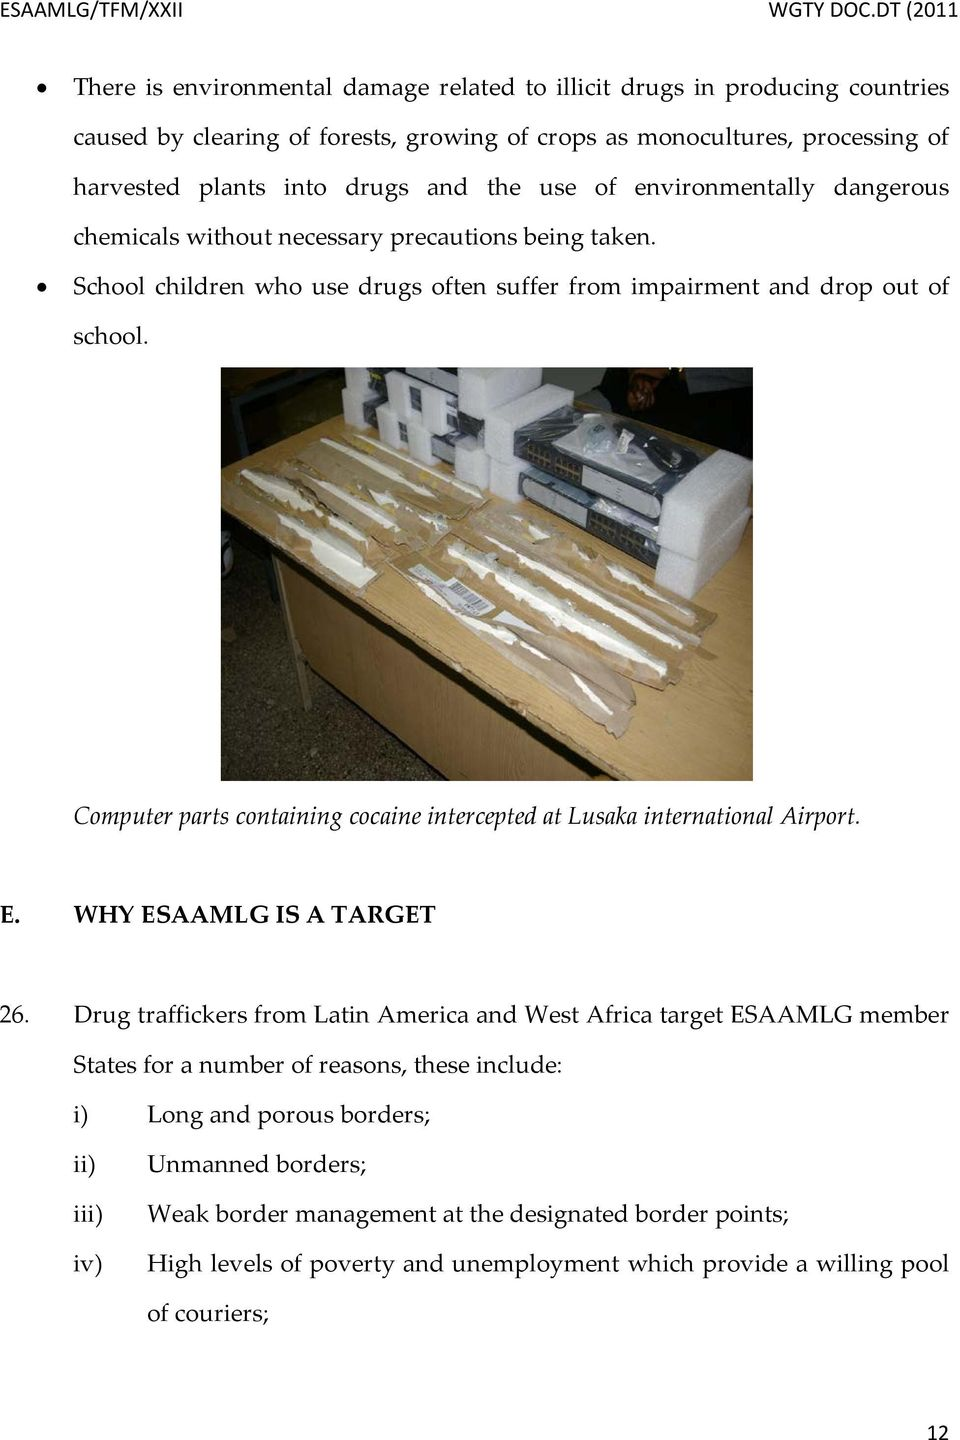 Computer parts containing cocaine intercepted at Lusaka international Airport. E. WHY ESAAMLG IS A TARGET 26.